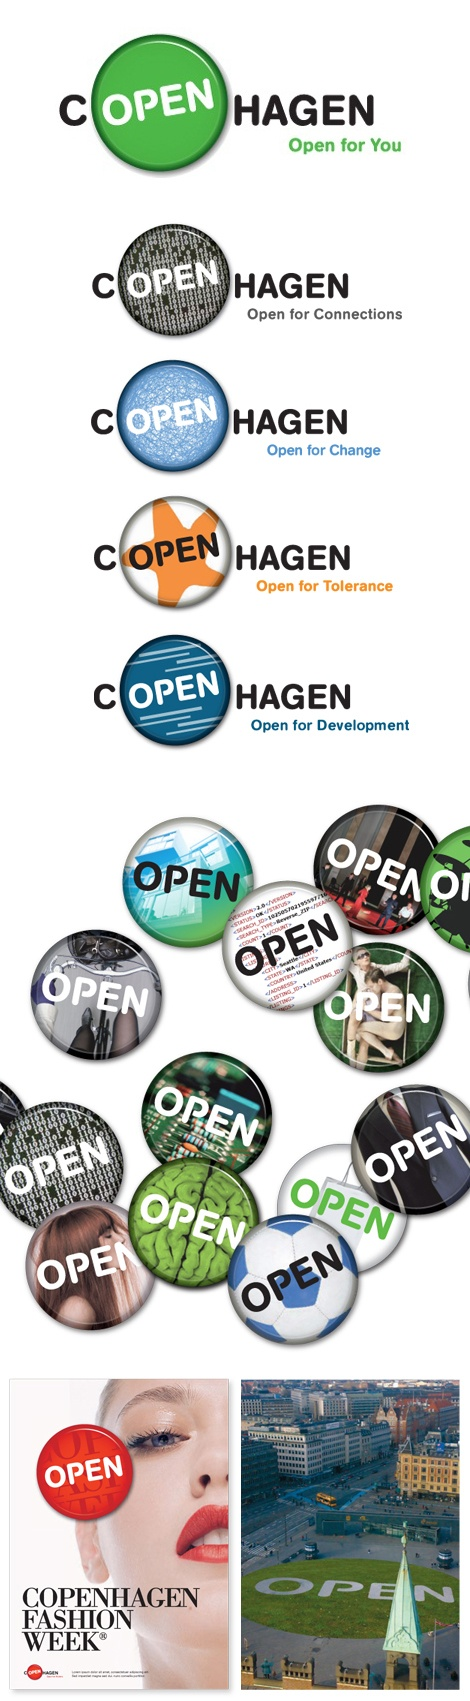 Copenhagen #Identity - such simple, effective & smart #branding